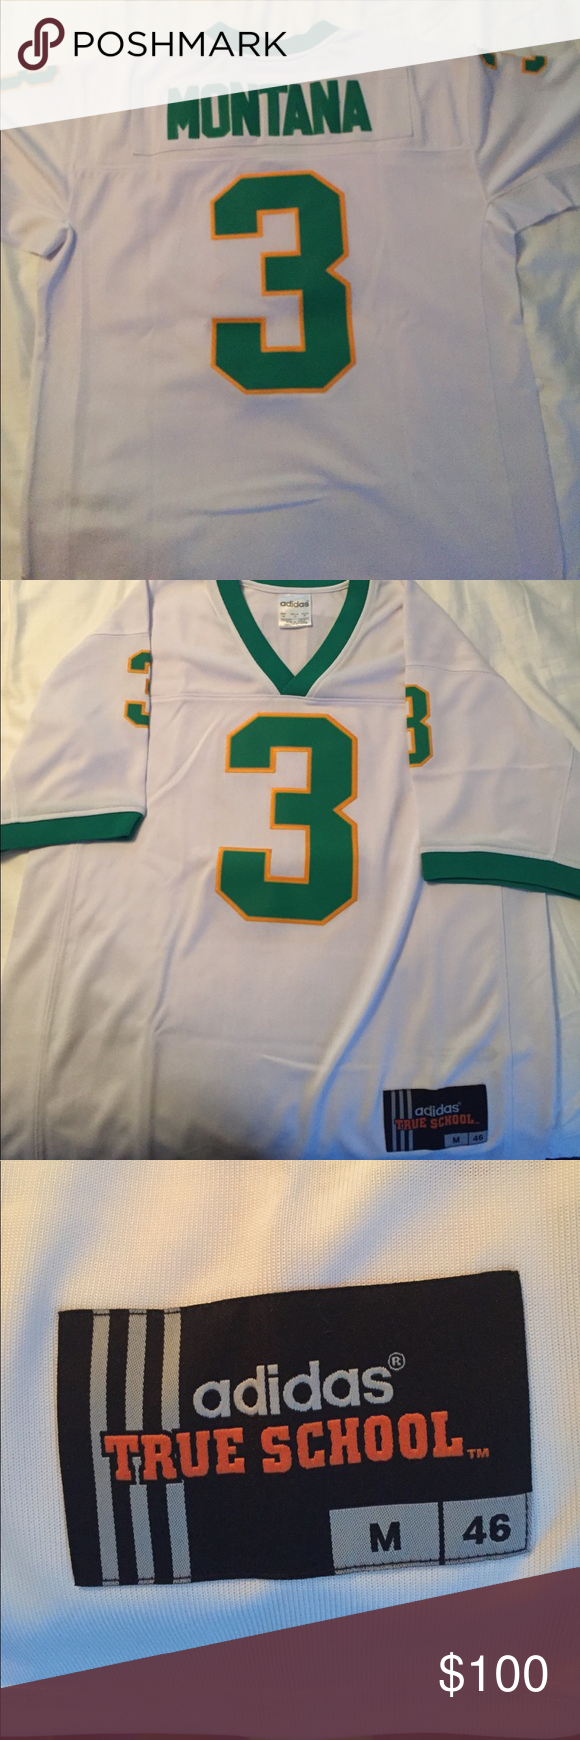 half off 130a6 025f6 Joe Montana Notre Dame football jersey M Excellent condition ...